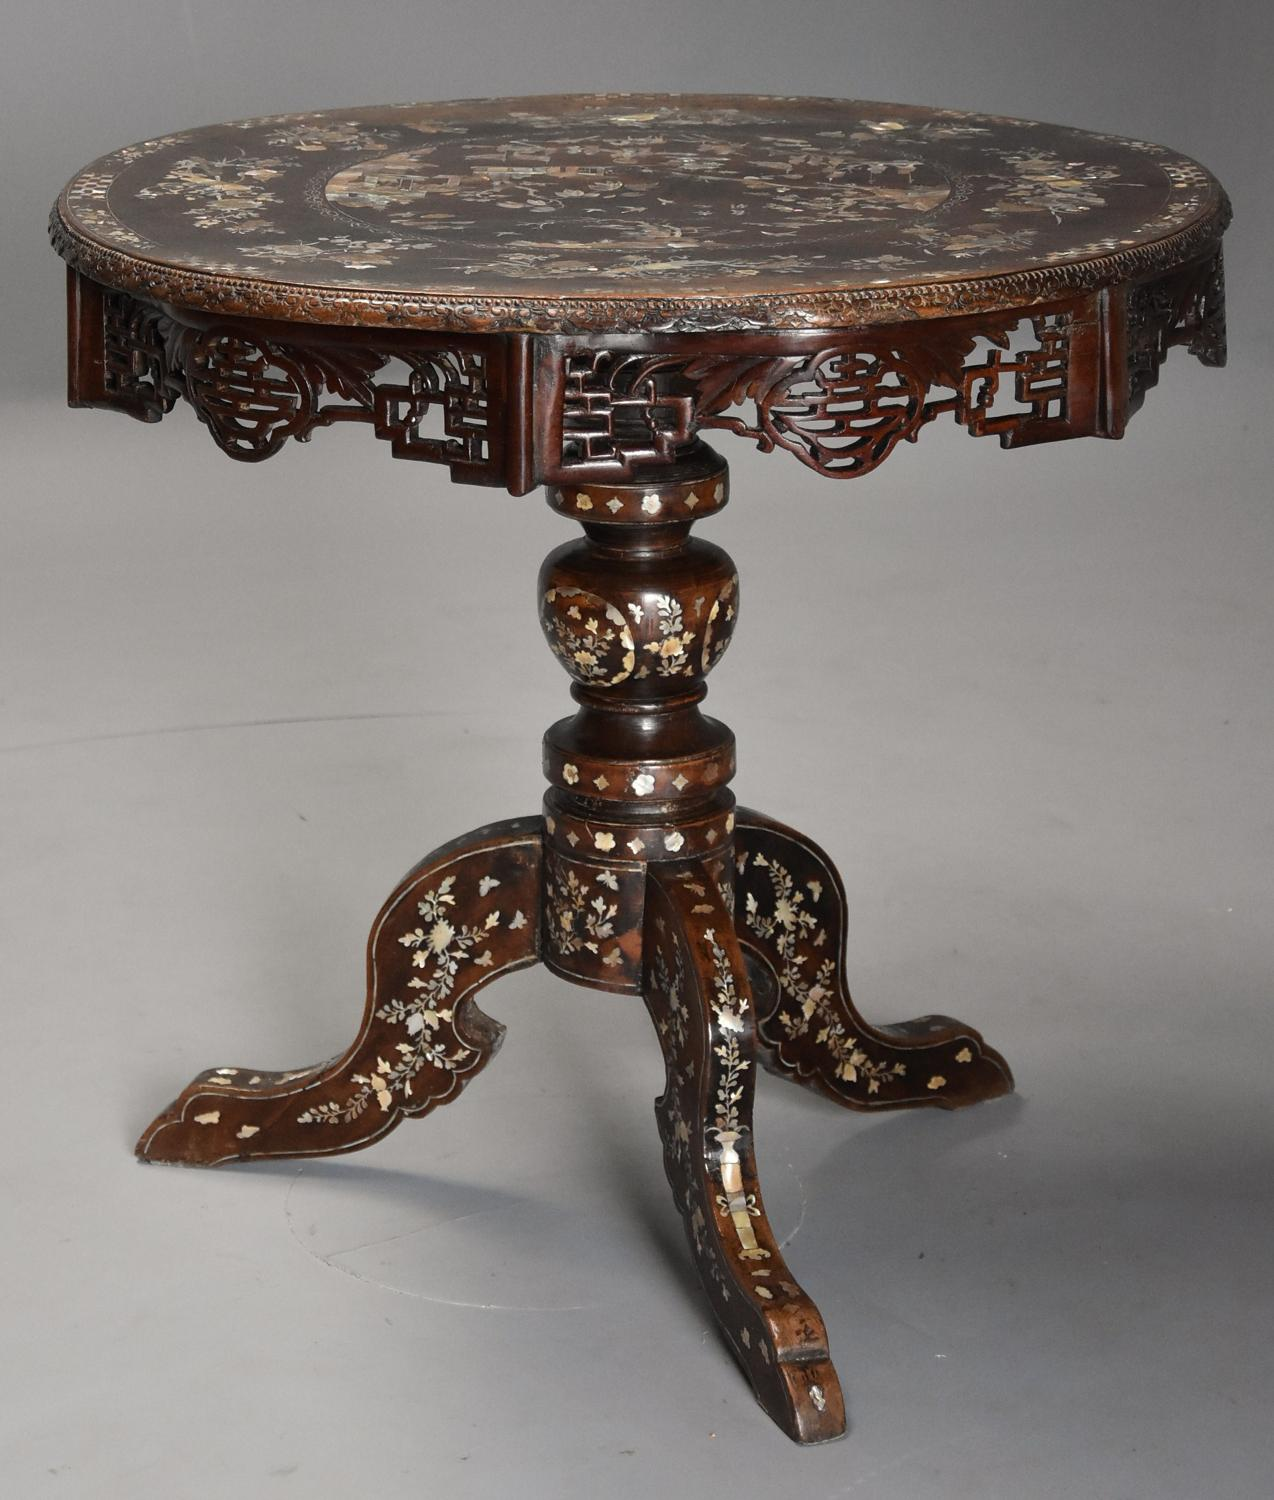 19thc Vietnamese hardwood mother of pearl inlaid circular centre table